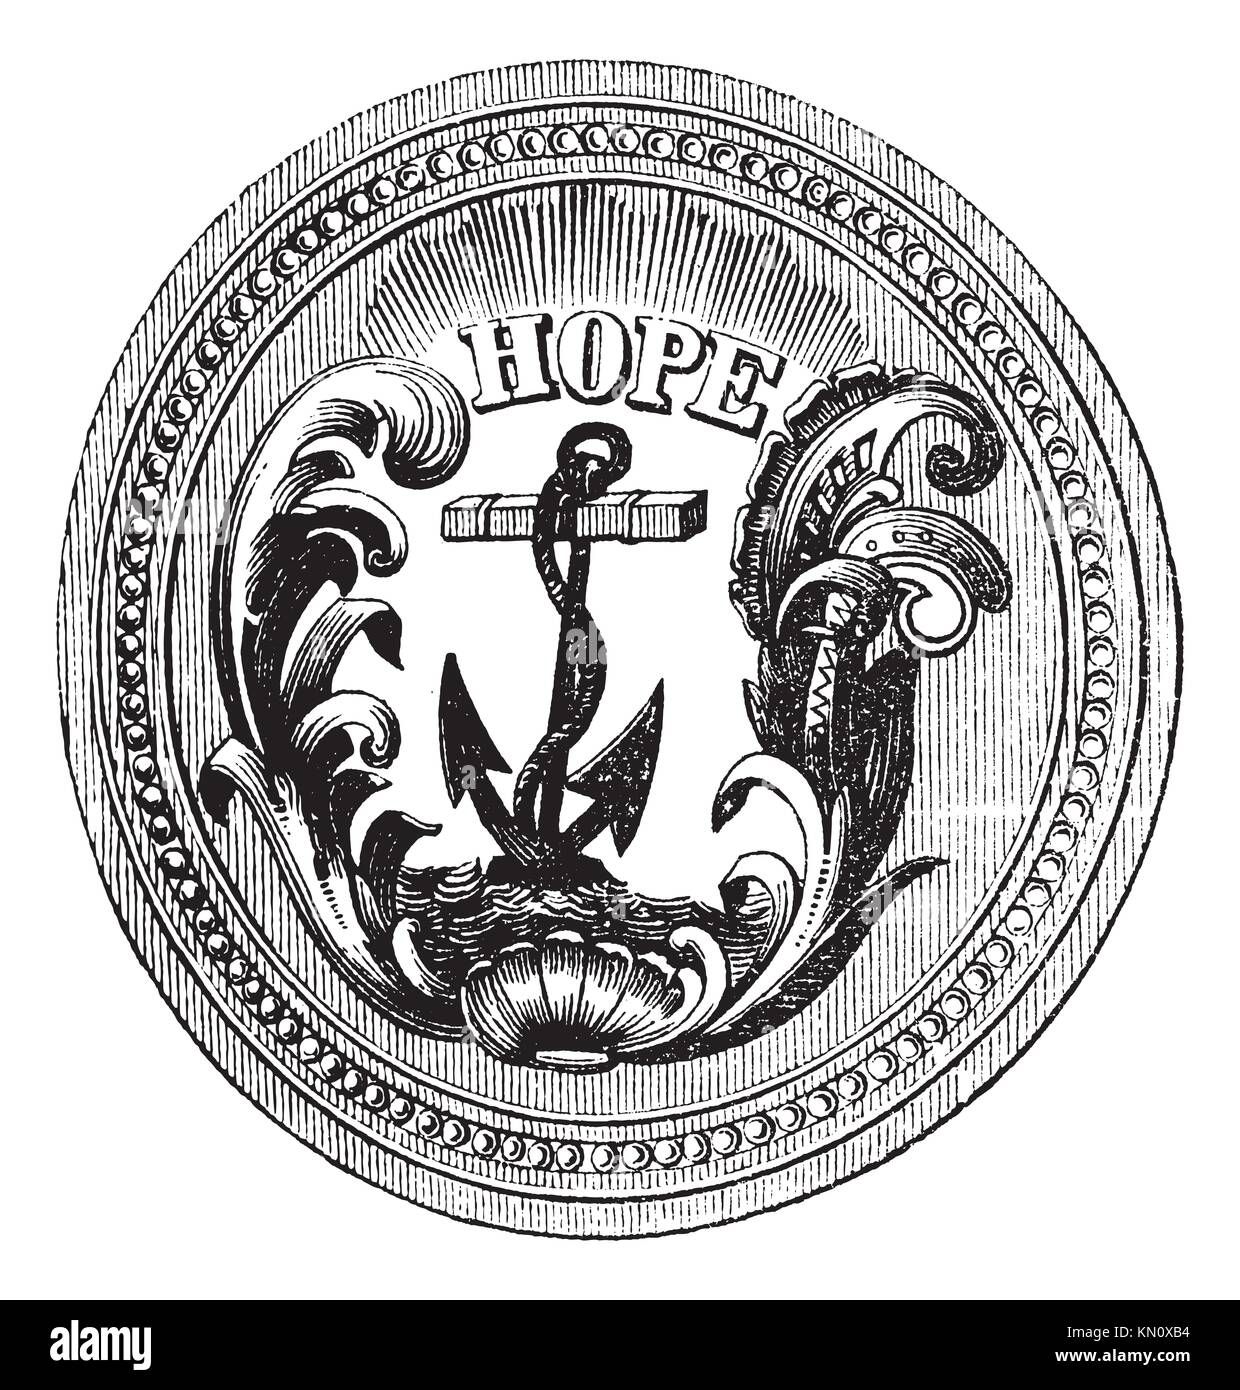 Seal of the state of rhode island usa vintage engraving old seal of the state of rhode island usa vintage engraving old engraved illustration of seal of the state of rhode island isolated on a white biocorpaavc Choice Image